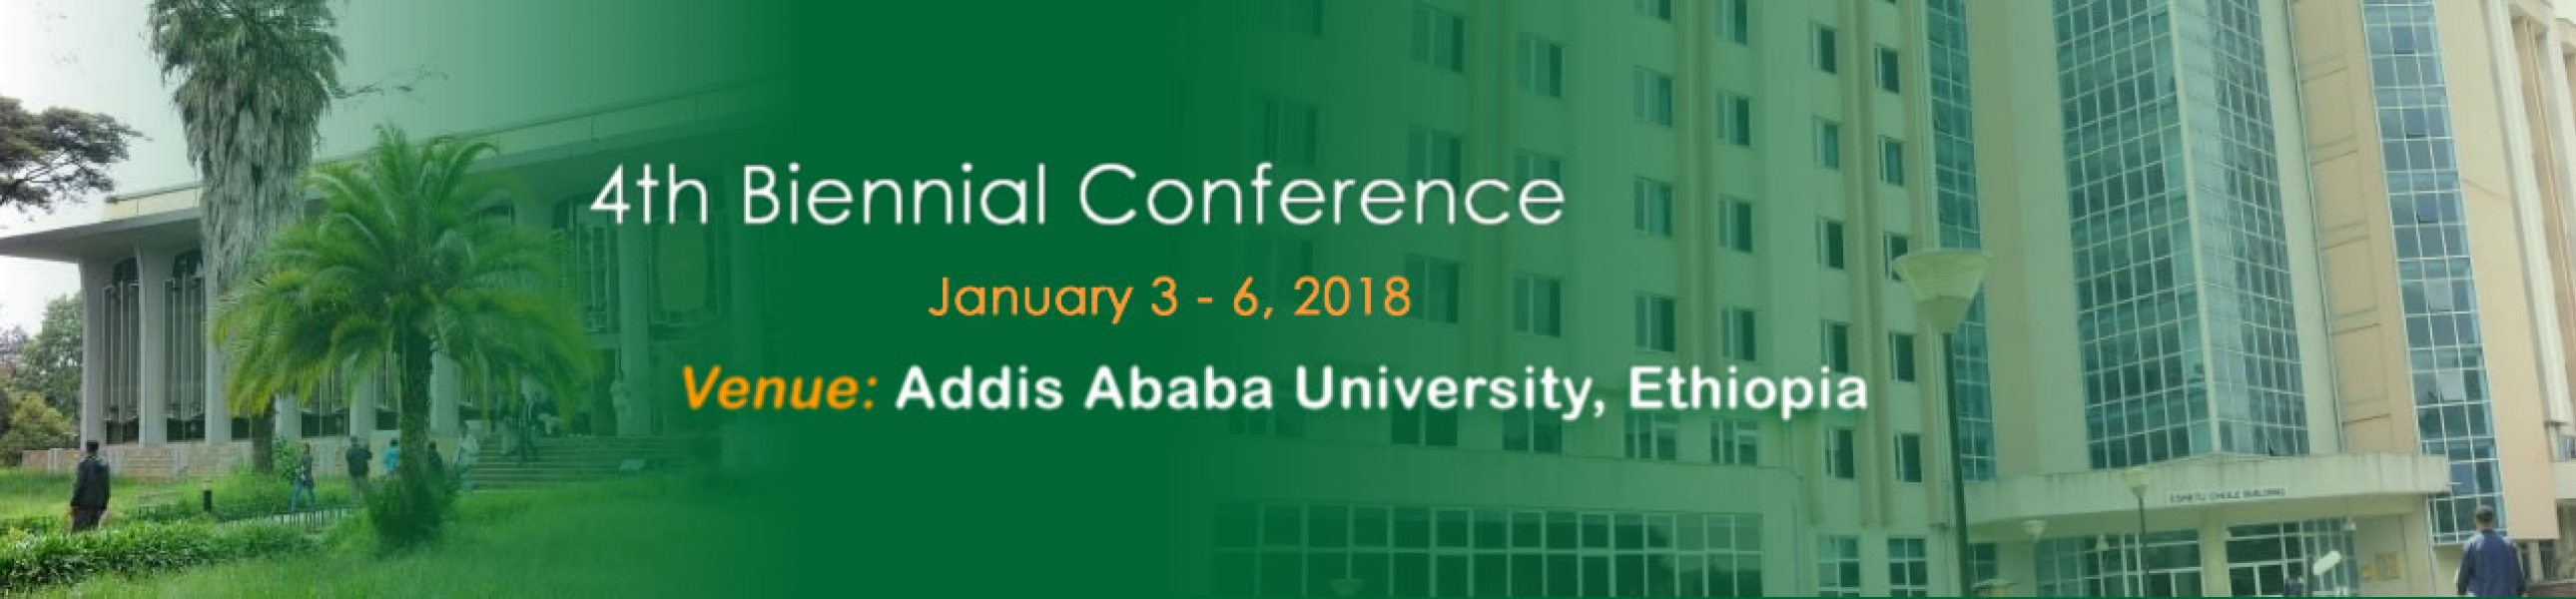 AFAM Biennial Conference - 2018